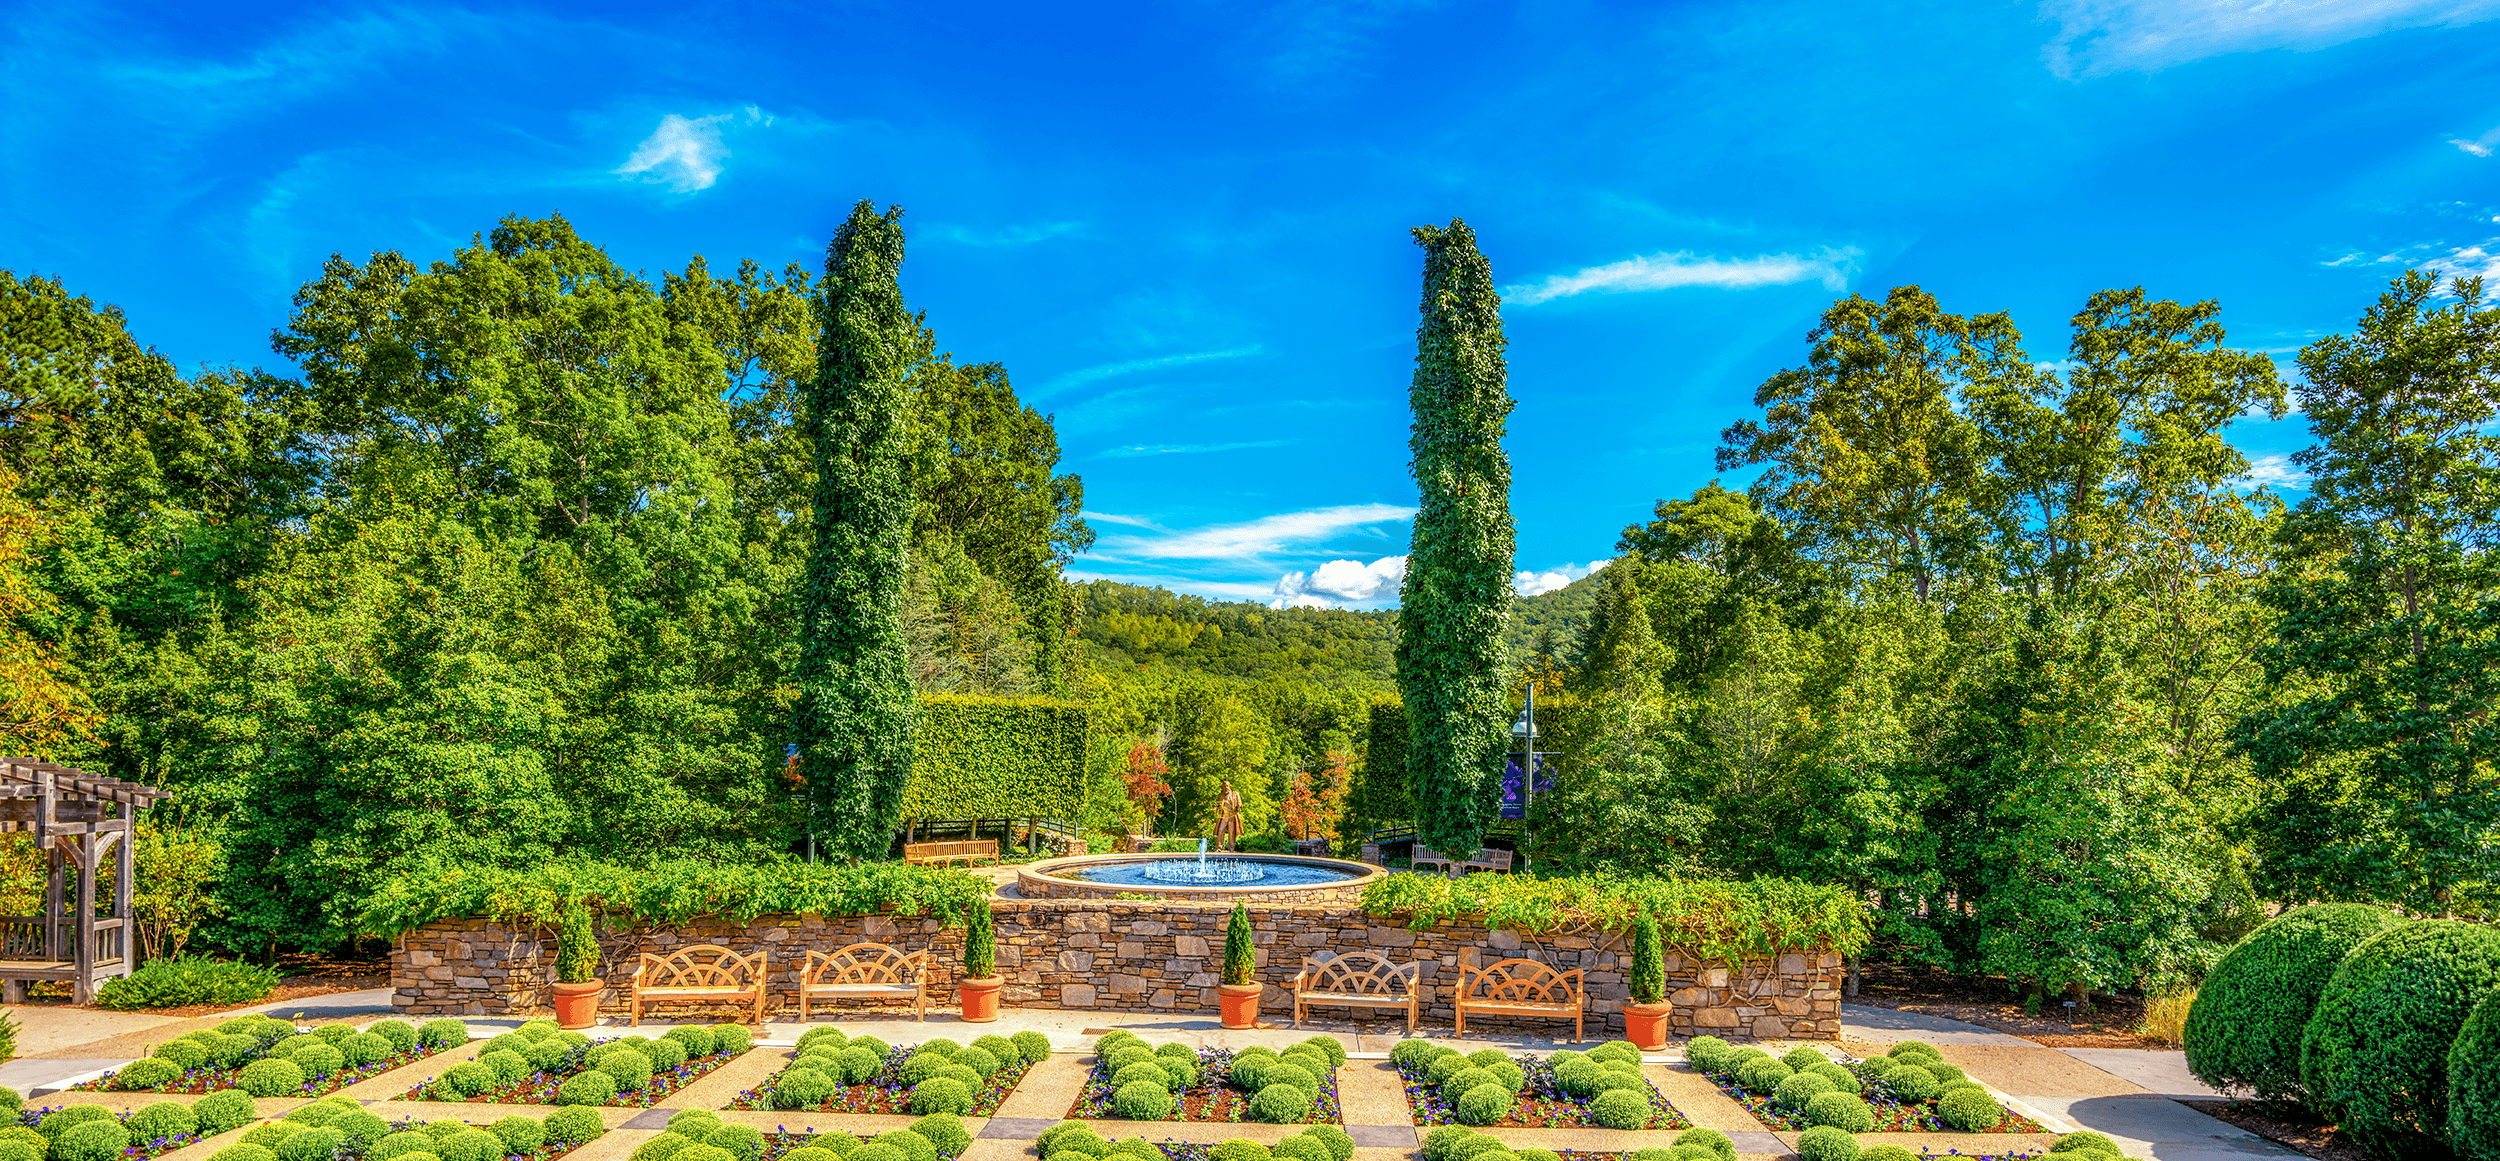 American landscape architect Frederick Law Olmsted originally envisioned the  North Carolina Arboretum  in 1898, shortly after he finished the beautiful grounds on  Biltmore Estate  in Asheville, which include  The Gardens at Biltmore House . Pictured here are the lovely  Quilt Garden  and the  Blue Ridge Court  with its water fountain and the 8-foot bronze statue of Frederick Law Olmsted. The statue was sculptured by Zenos Frudakis in 2016, representing Frederick Olmsted during his time in Asheville.